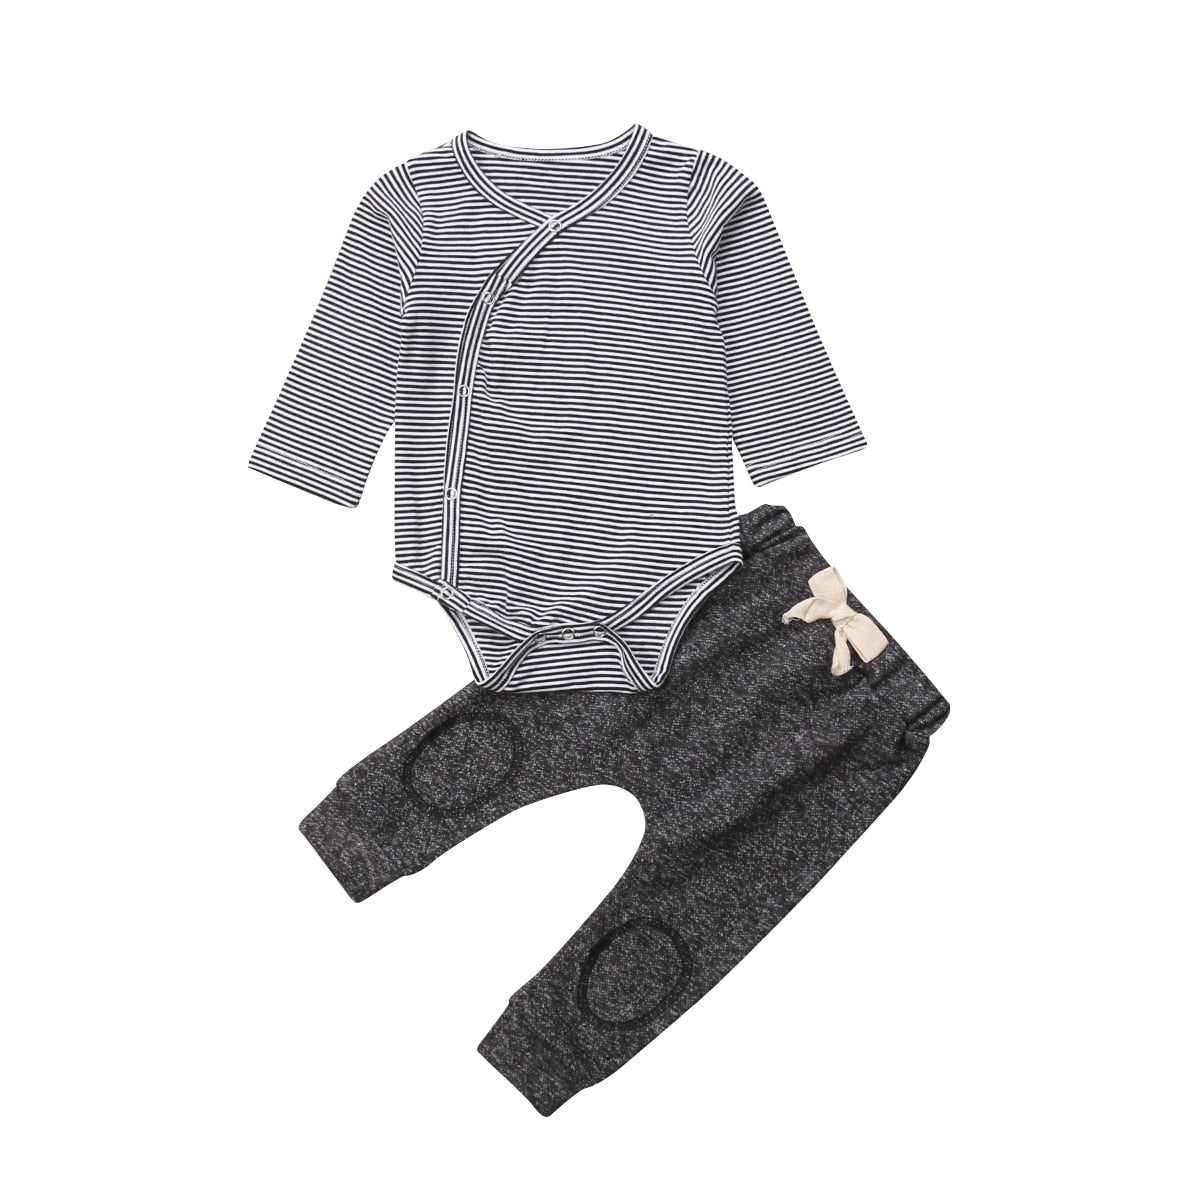 Newborn Kids Baby Boys Clothing Tops Romper Stripe Long Sleeve Pants Cotton Casual Striped 2Pcs Set Clothes Sets Baby Boys 0-24M